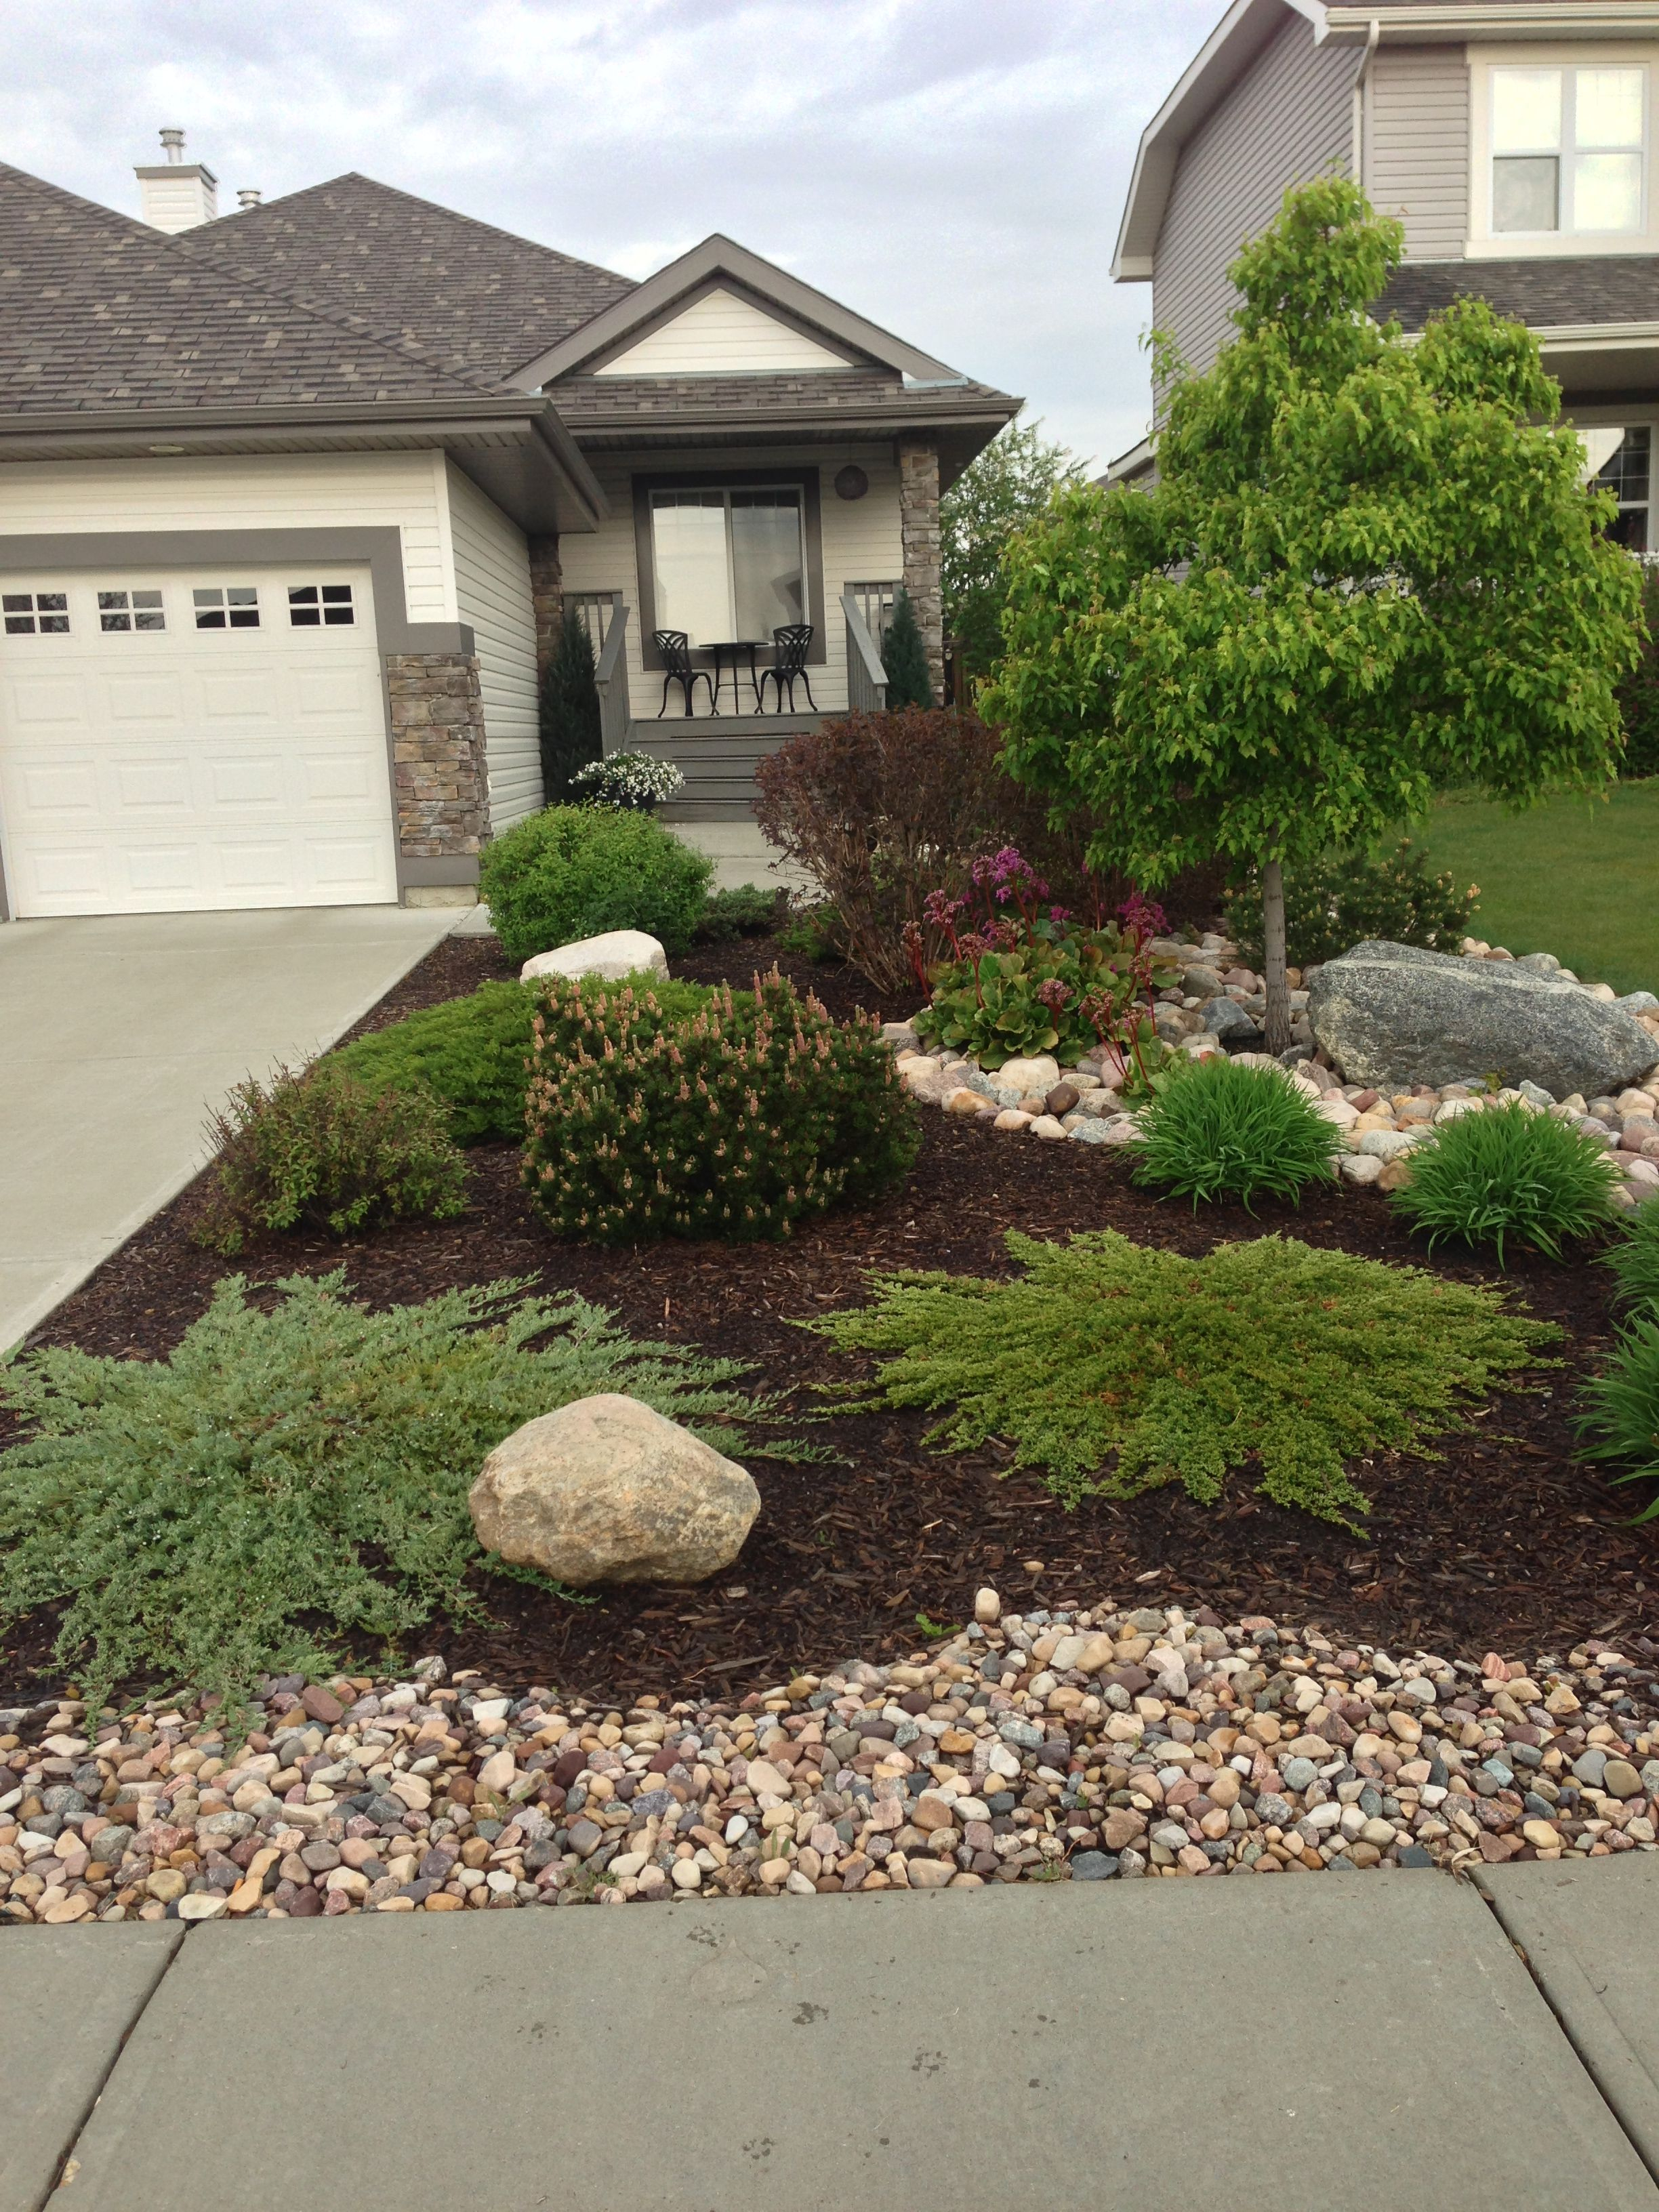 Front Yard Landscaping Ideas Curbappeal Small Front Yard regarding 13 Smart Concepts of How to Craft Backyard Landscaping Ideas With Stones